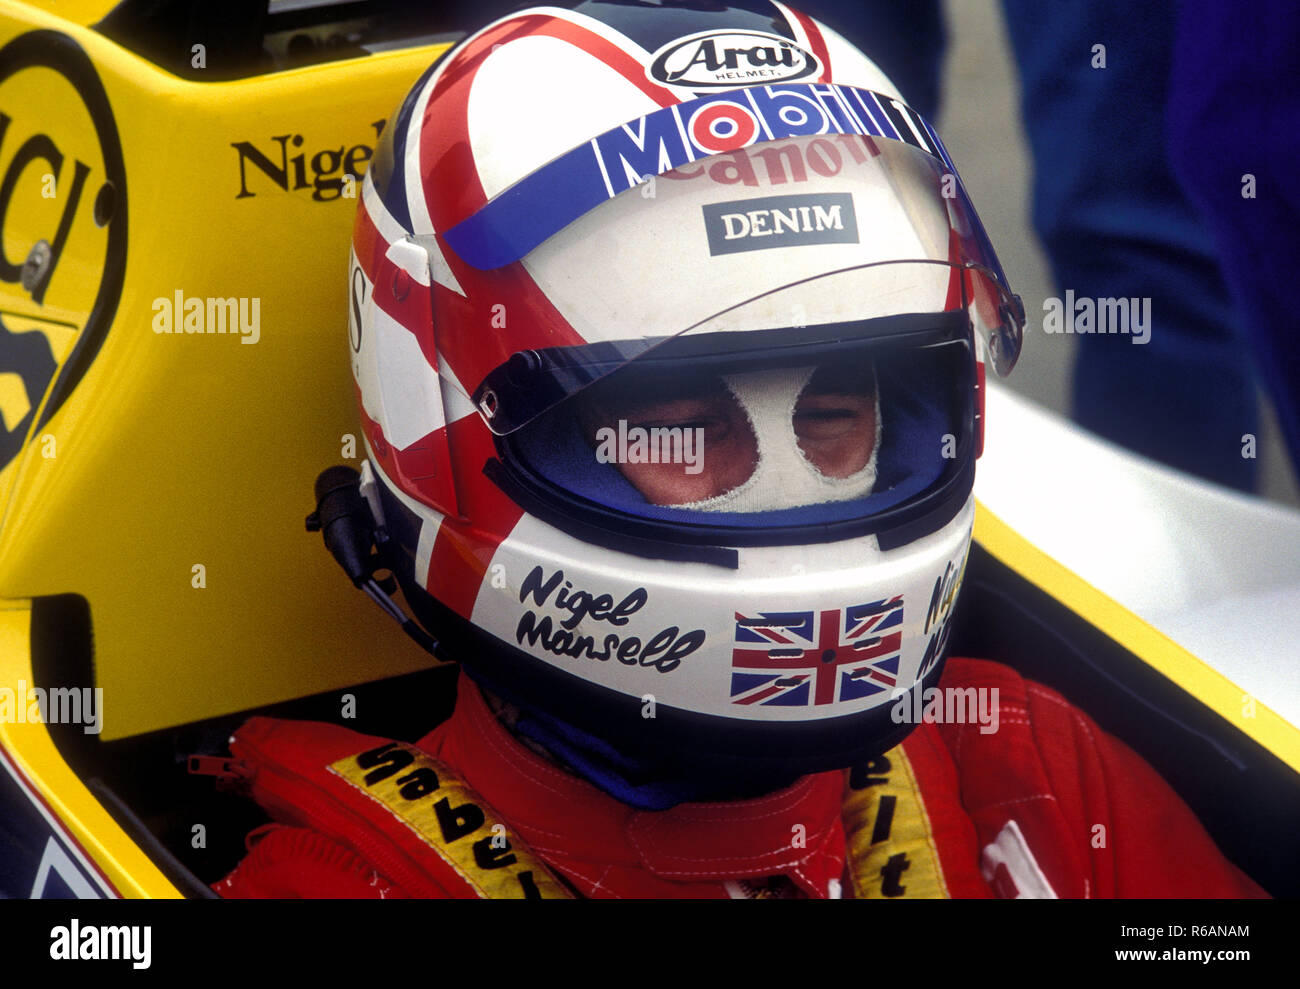 Nigel Mansell in the Williams -Honda at the Portuguese Grand Prix 1985 - Stock Image